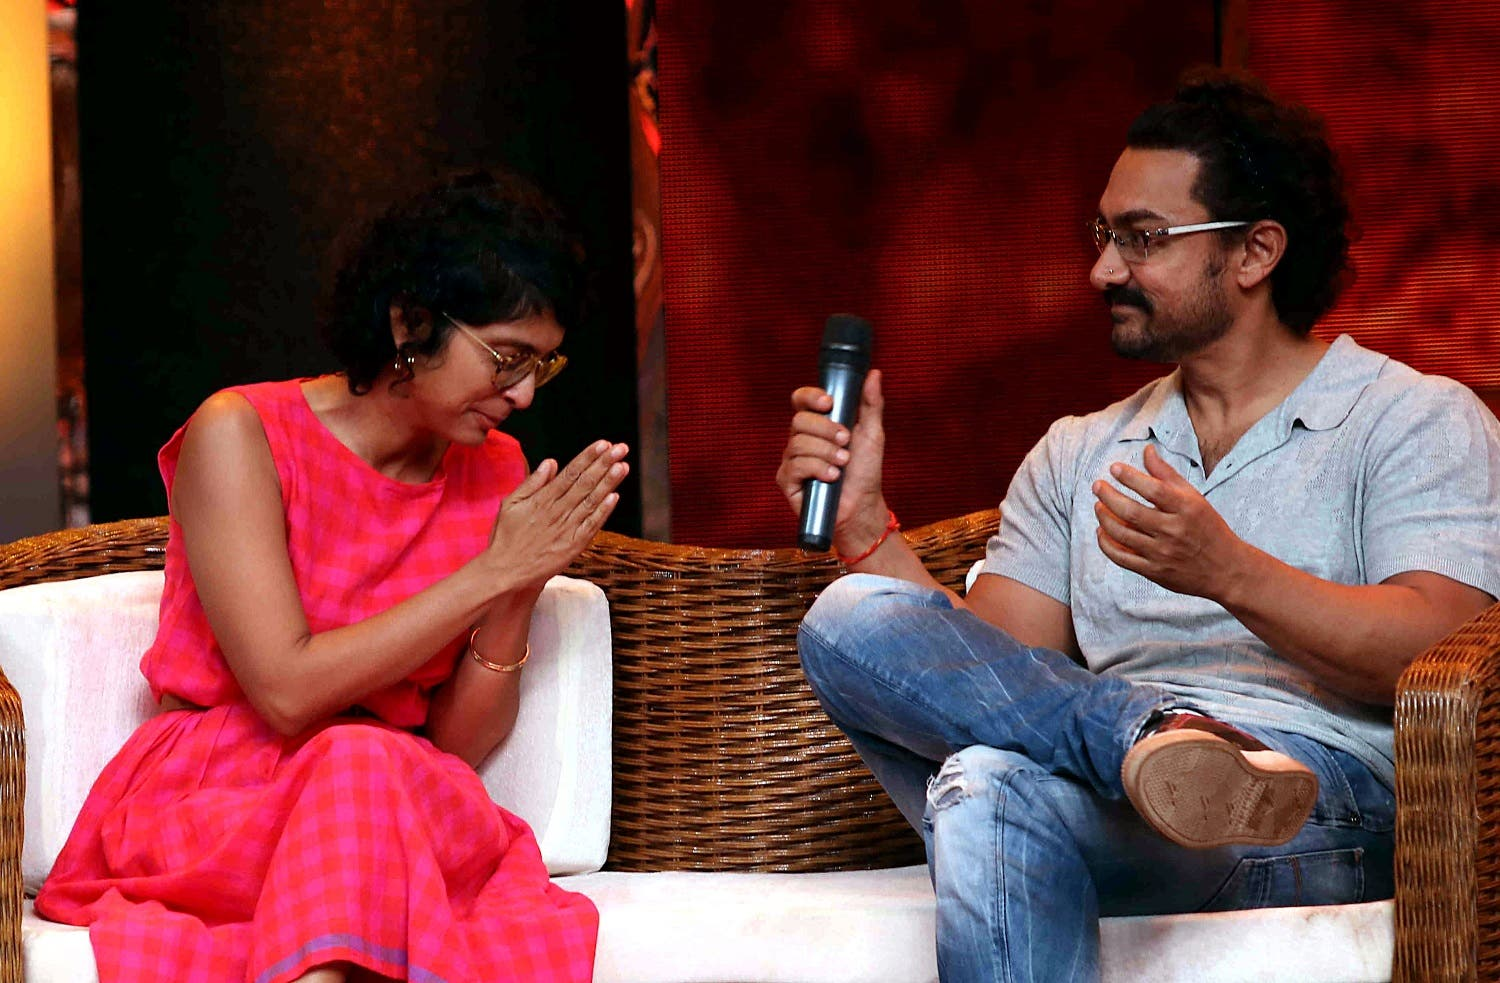 Bollywood actor Aamir Khan takes part in a television chat show in Mumbai on May 20, 2017. (AFP)